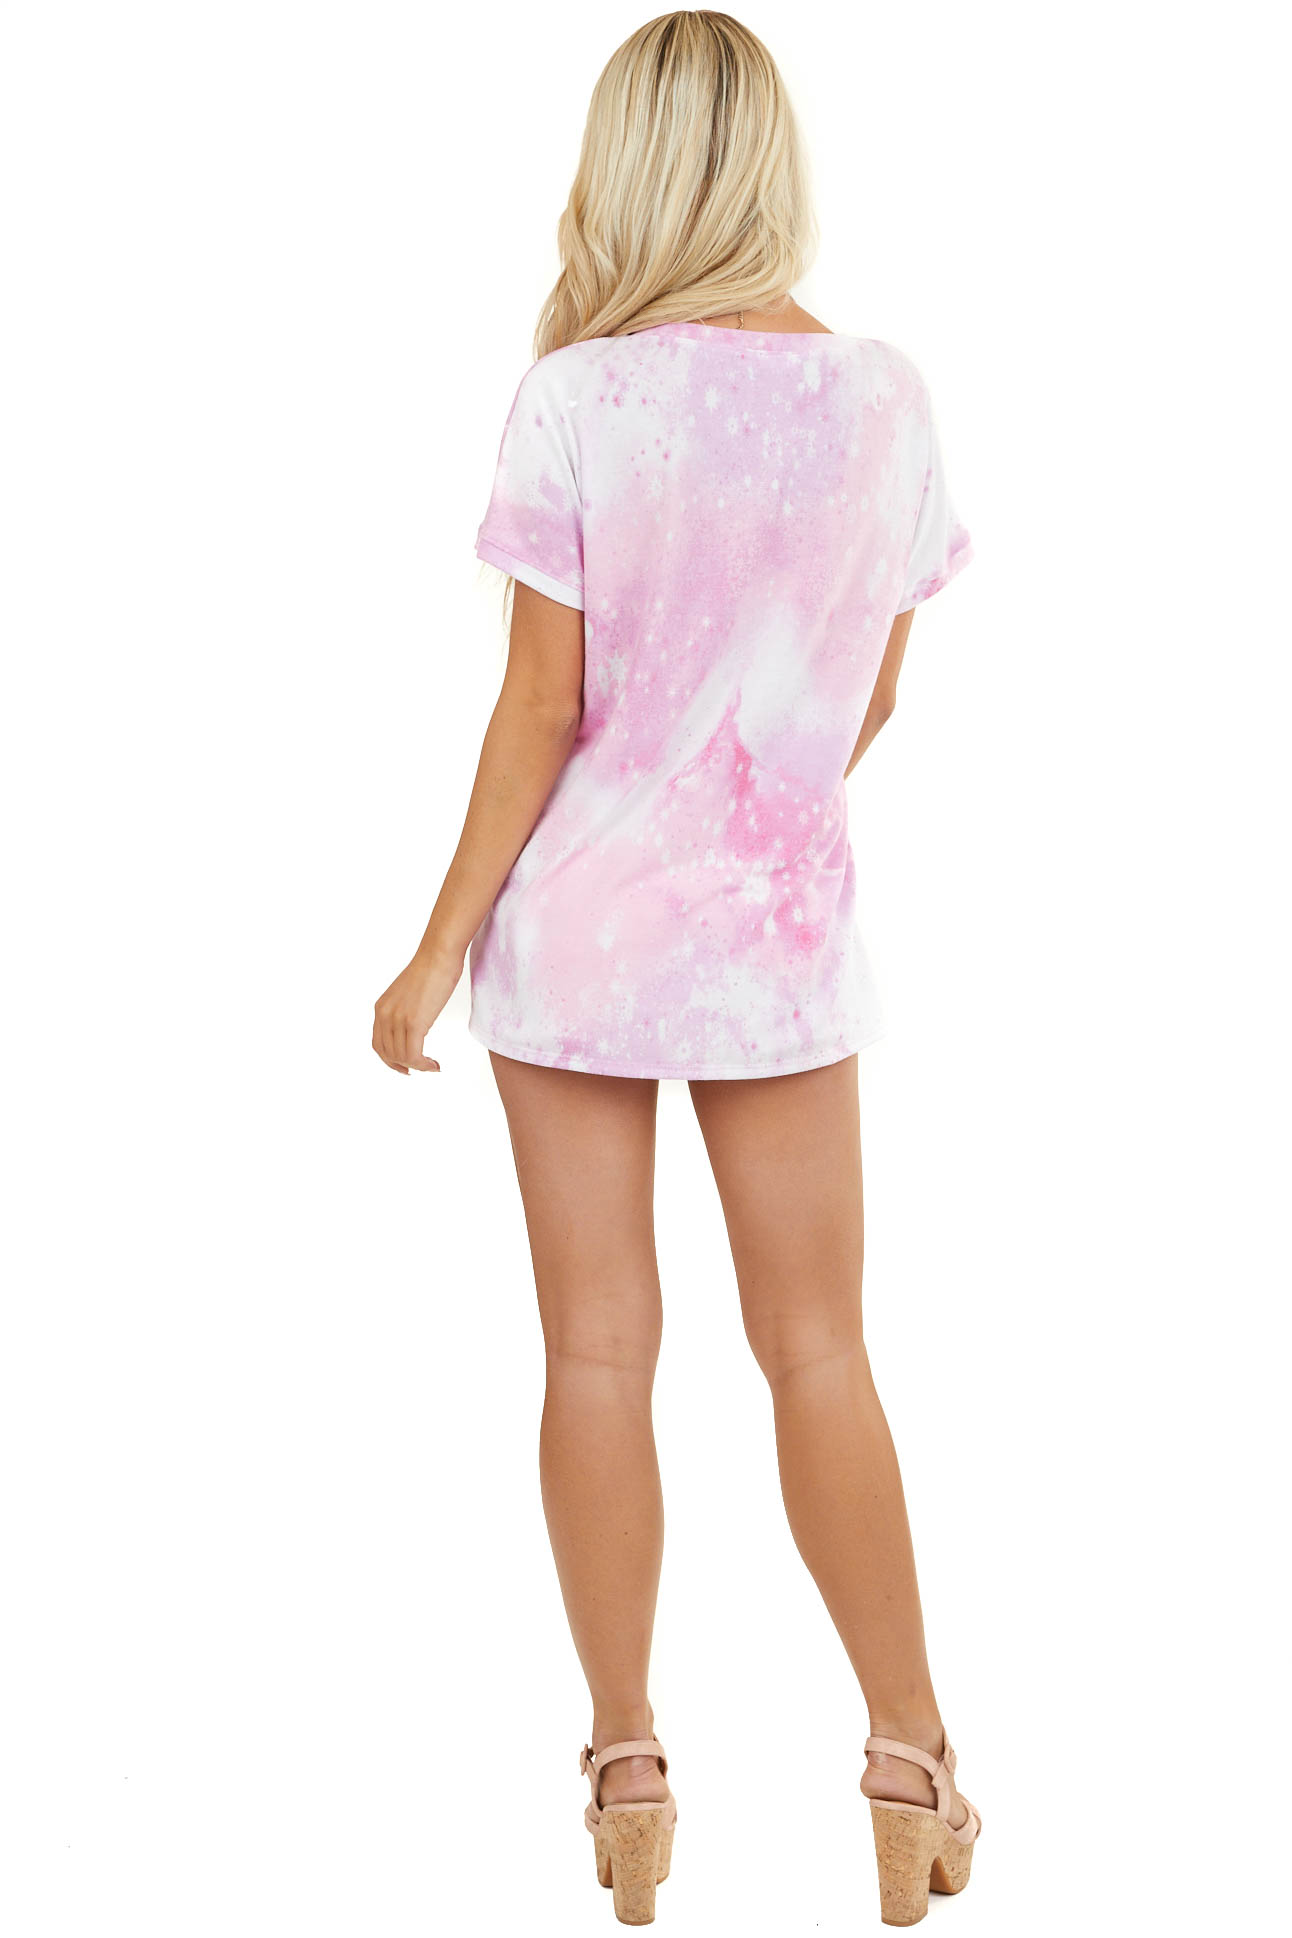 Pink and Off White Tie Dye Short Sleeve Top with V Neckline